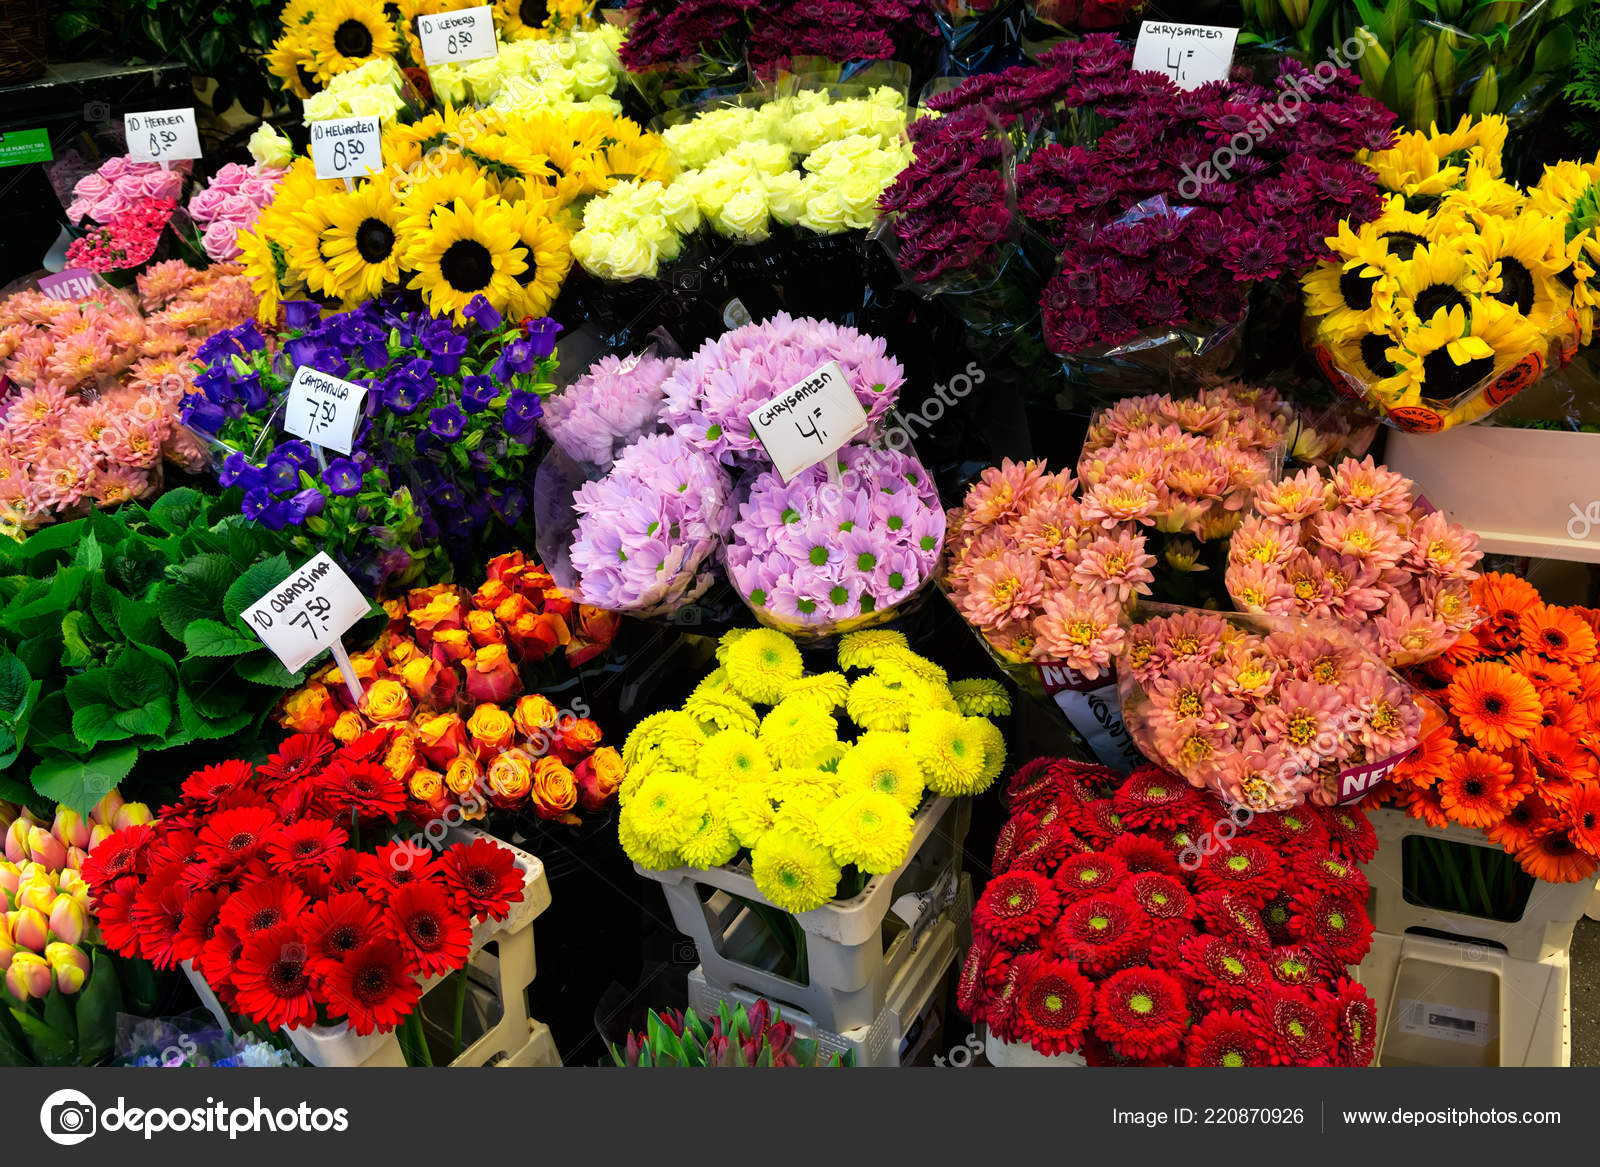 Amsterdam Netherlands April 2018 Colorful Chrysanthemums Sale Amsterdam Flower Market — Stock Photo